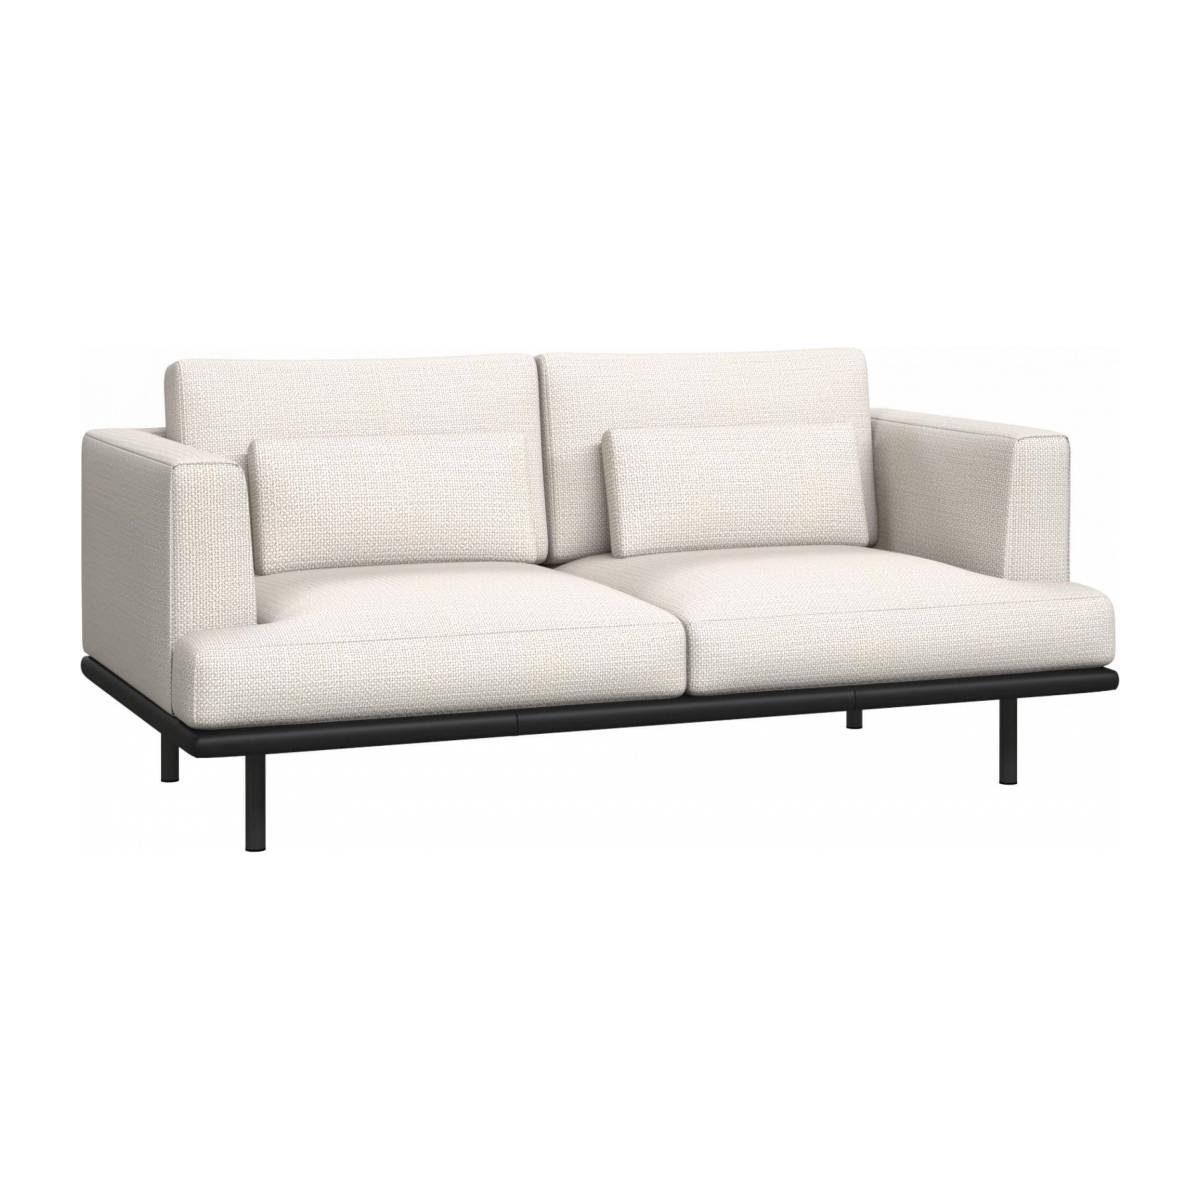 2 seater sofa in Fasoli fabric, snow white with base in black leather n°2